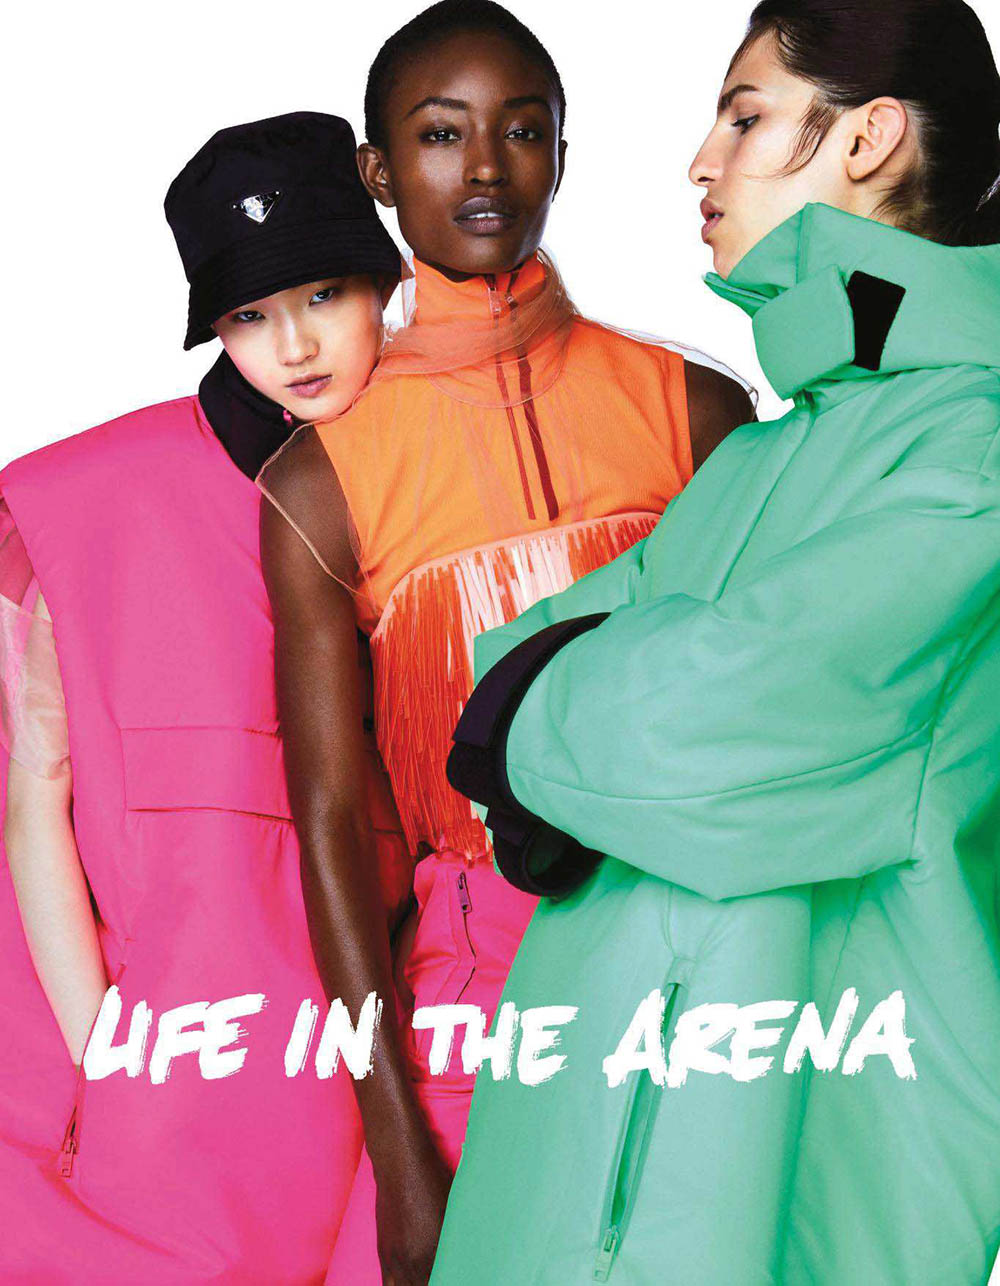 ''Life in the Arena'' by Walter Chin for Vogue Japan August 2018